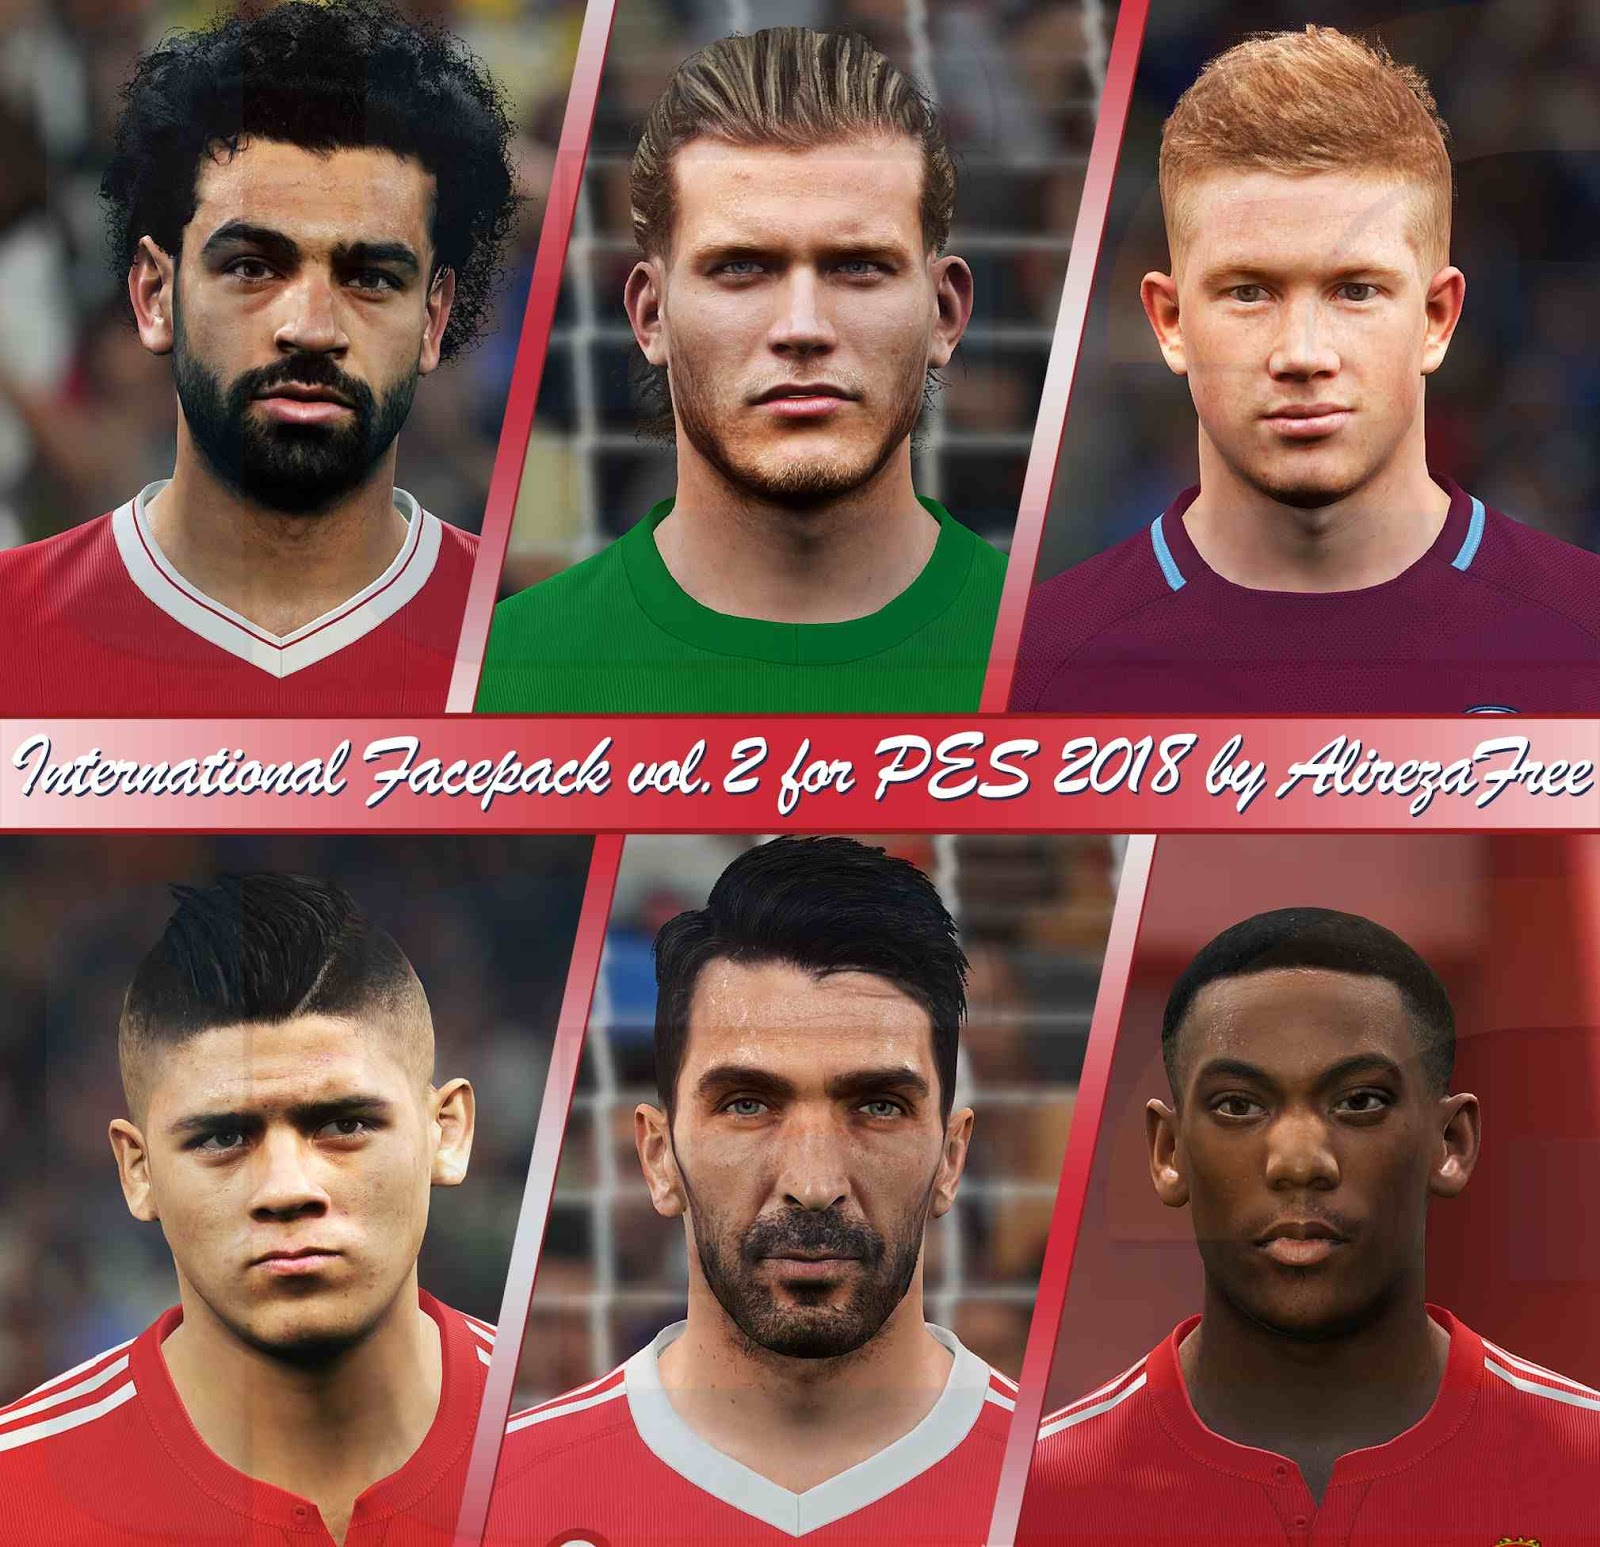 Ultigamerz Pes 2010 Pes 2011 Face: Ultigamerz: PES 2018 International Facepack 2018-19 Vol. 2